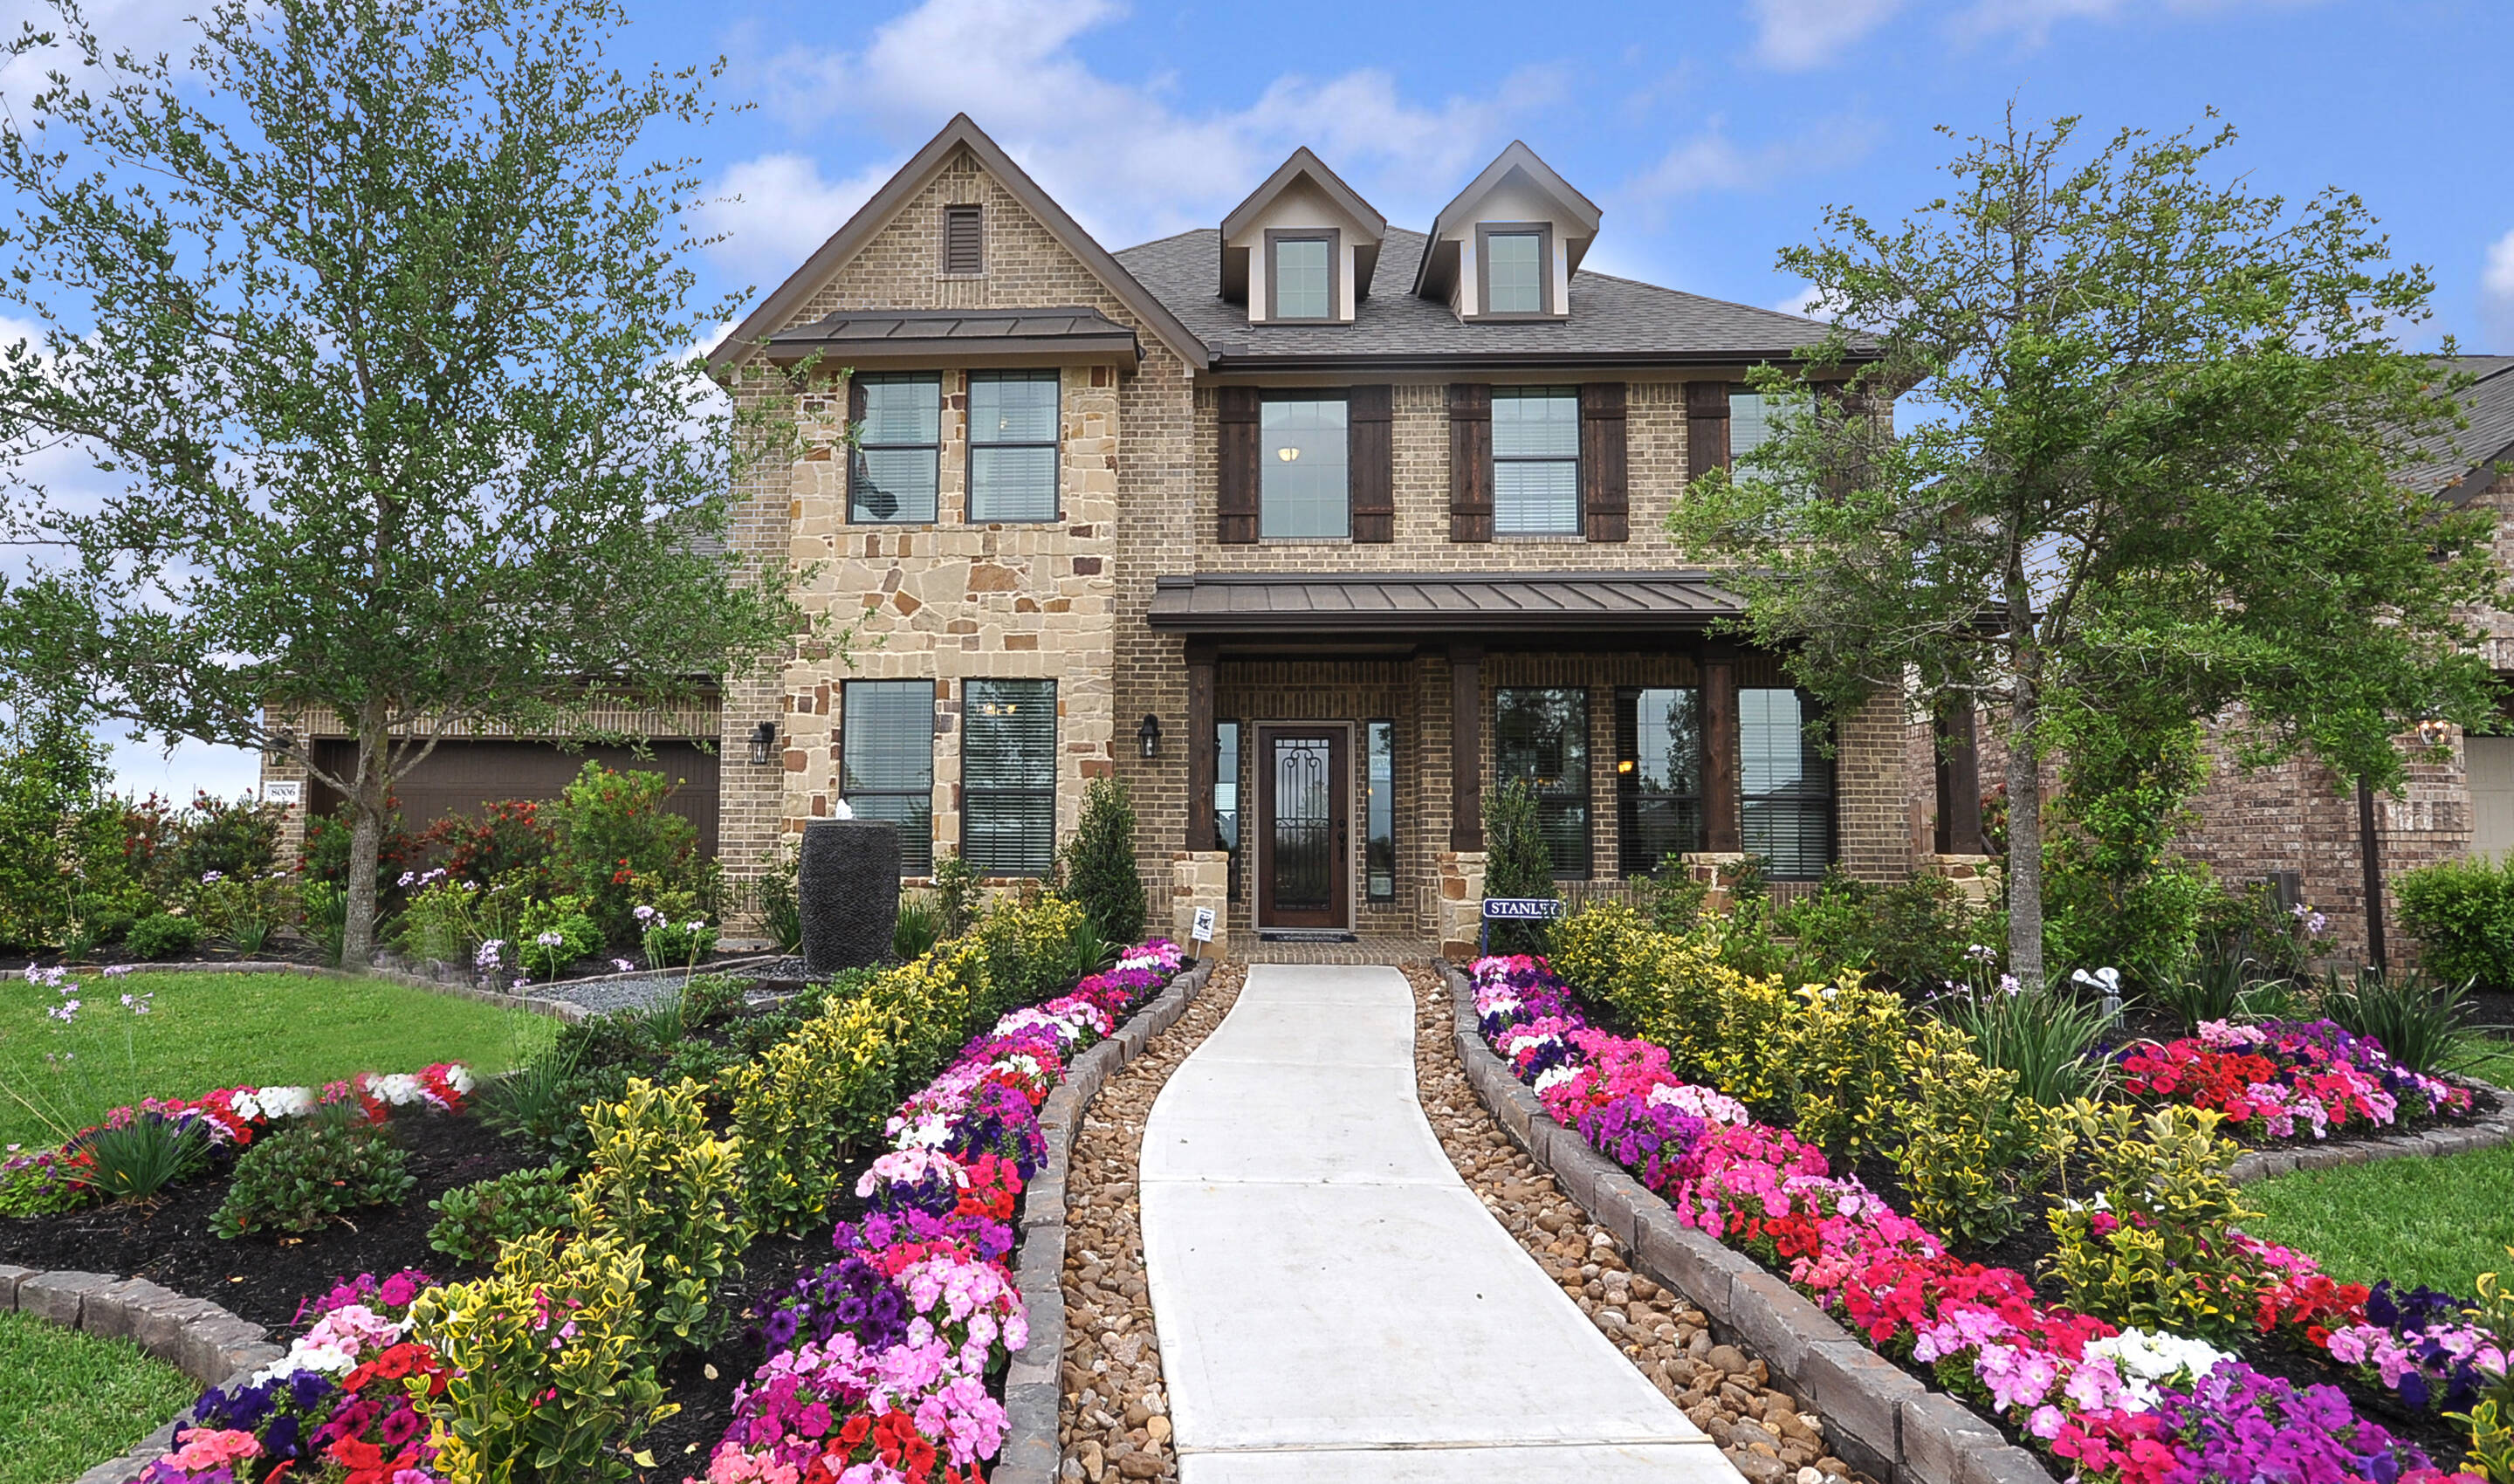 Brighton home design center houston